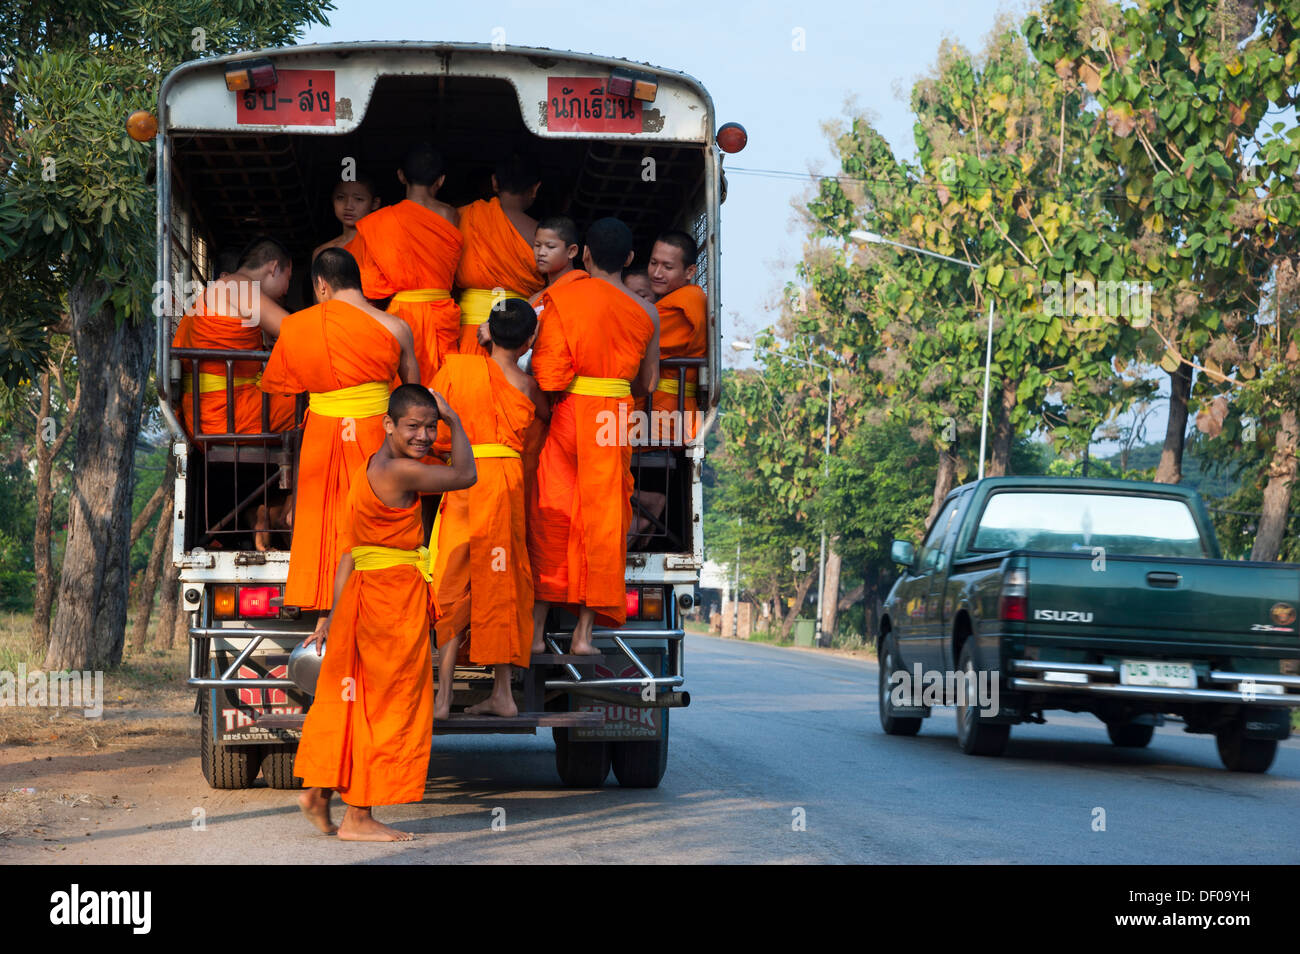 Songthaeo or songthaew, converted vehicle with young Buddhist monks from a monastery school, Sukhothai Province, Thailand, Asia - Stock Image